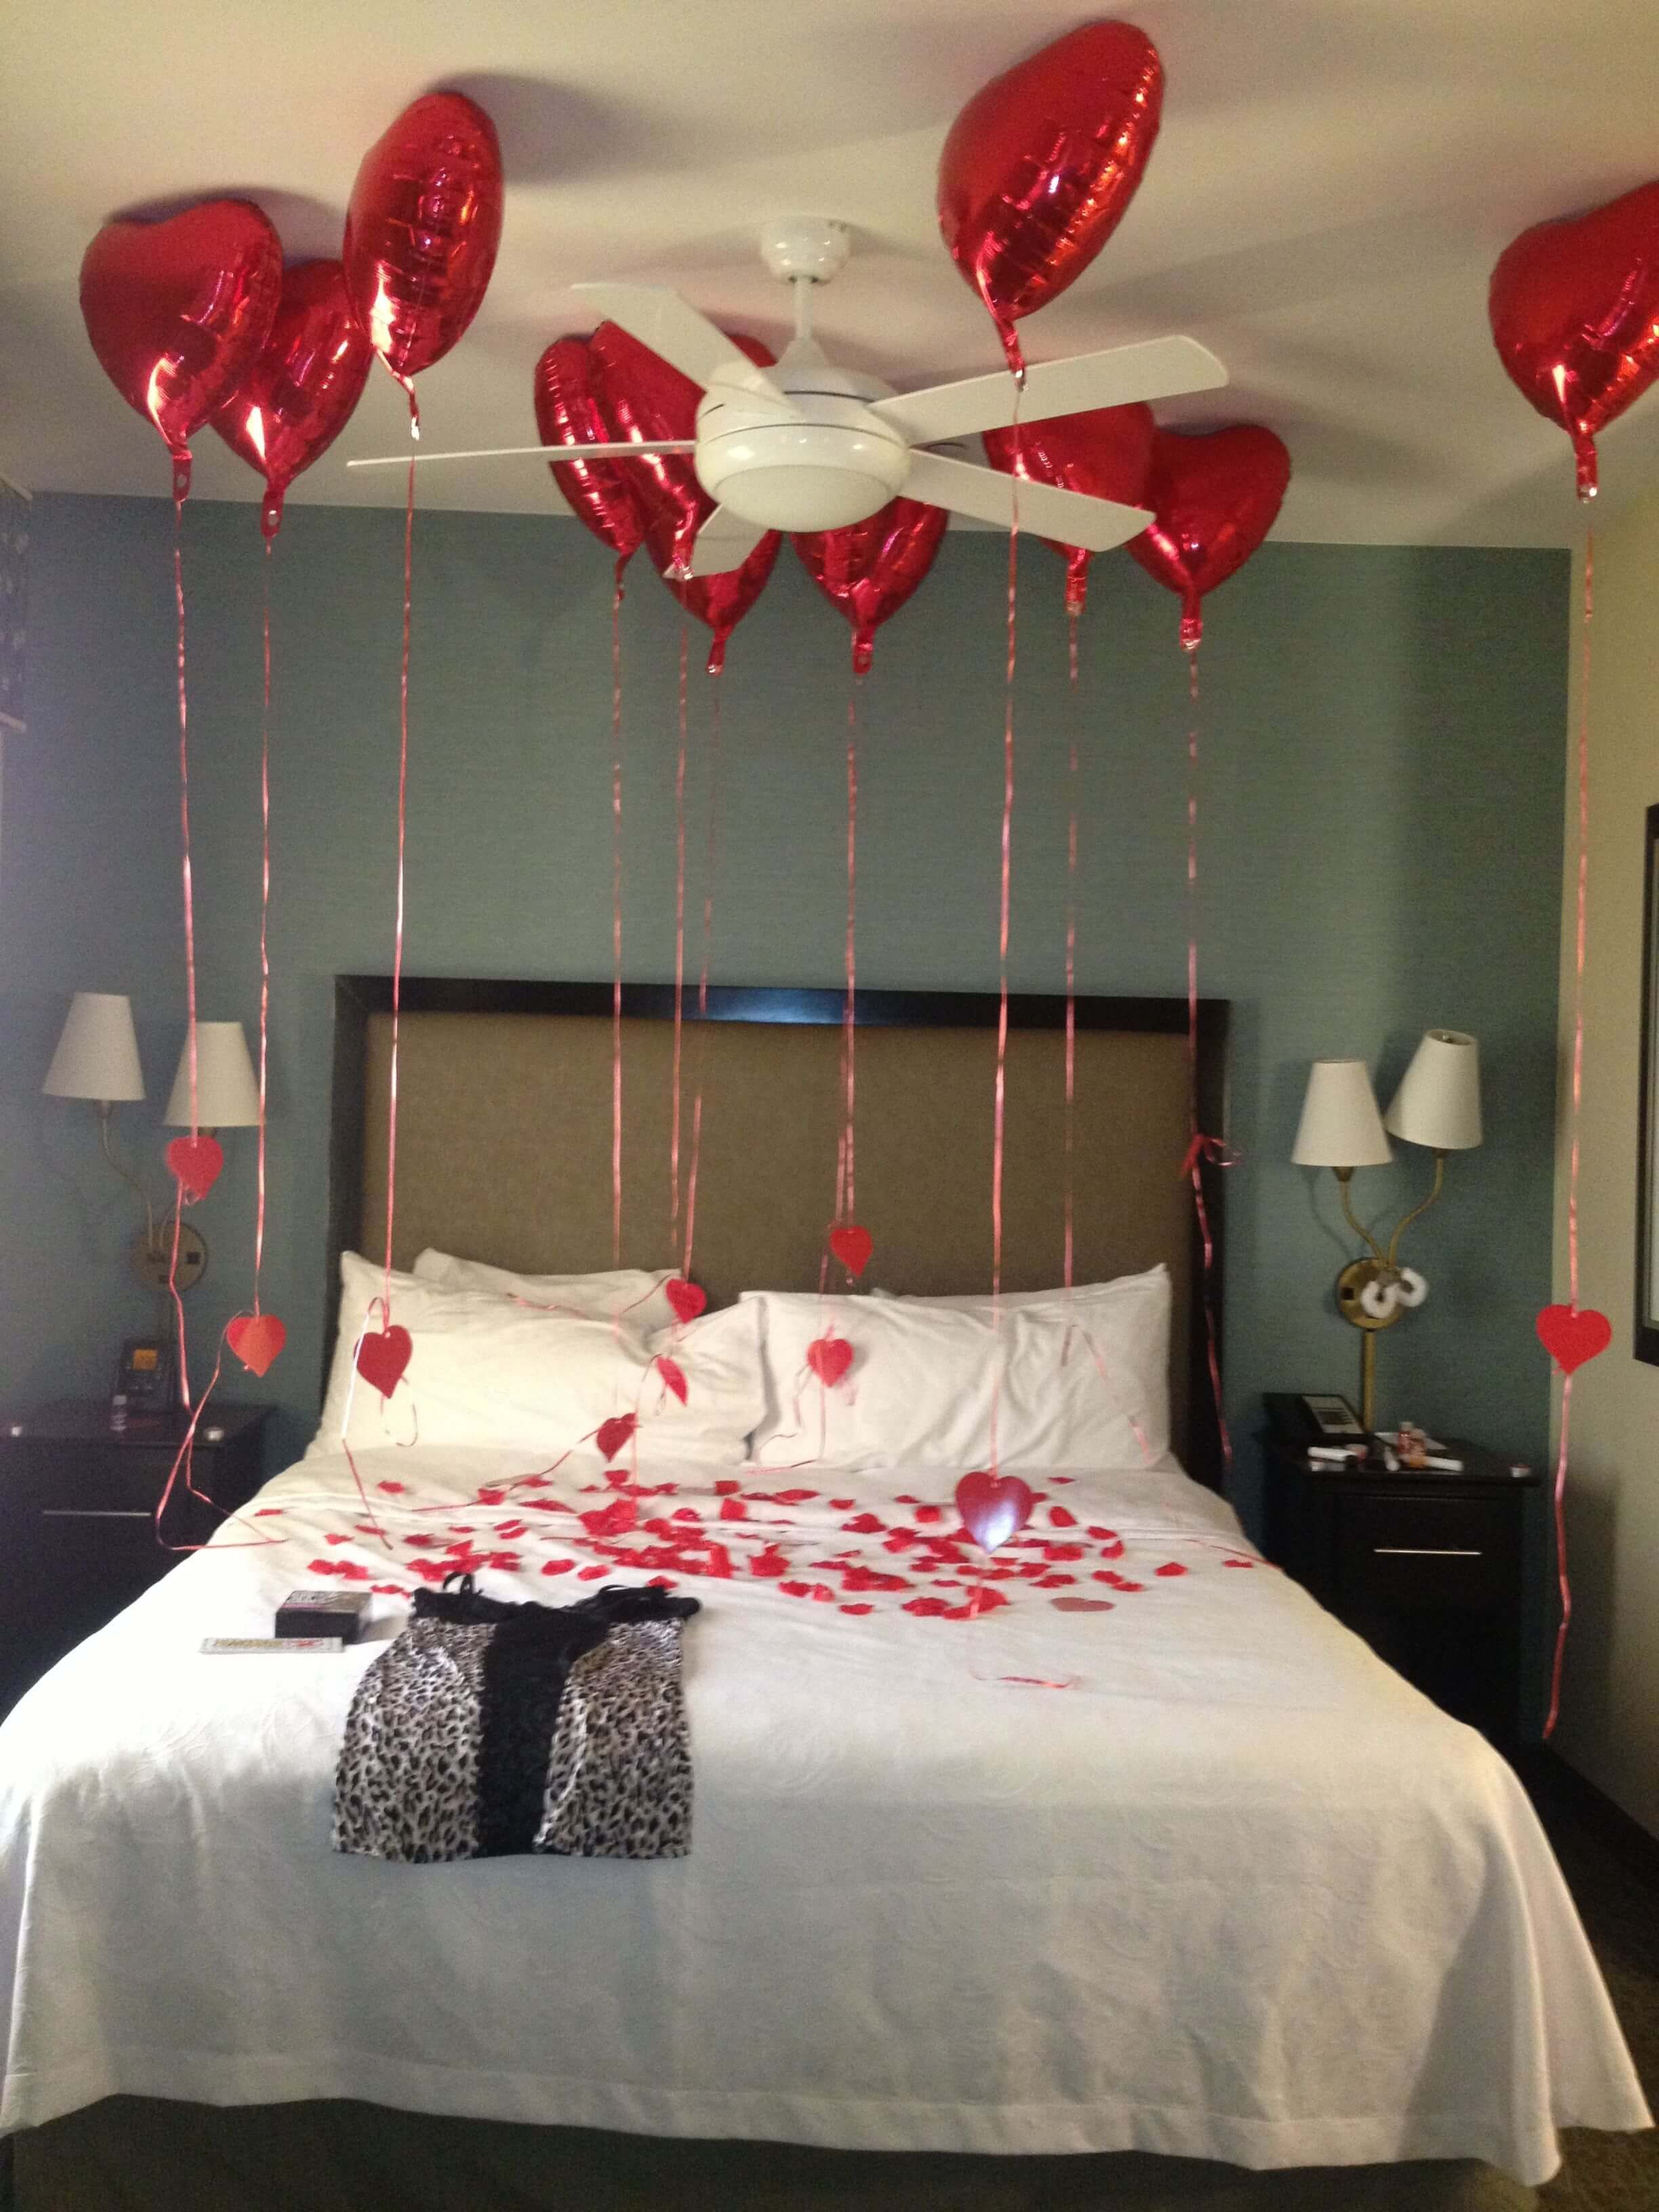 Explore The Best Valentine Bedroom Decoration Ideas Valentines Bedroom Romantic Room Decoration Romantic Room